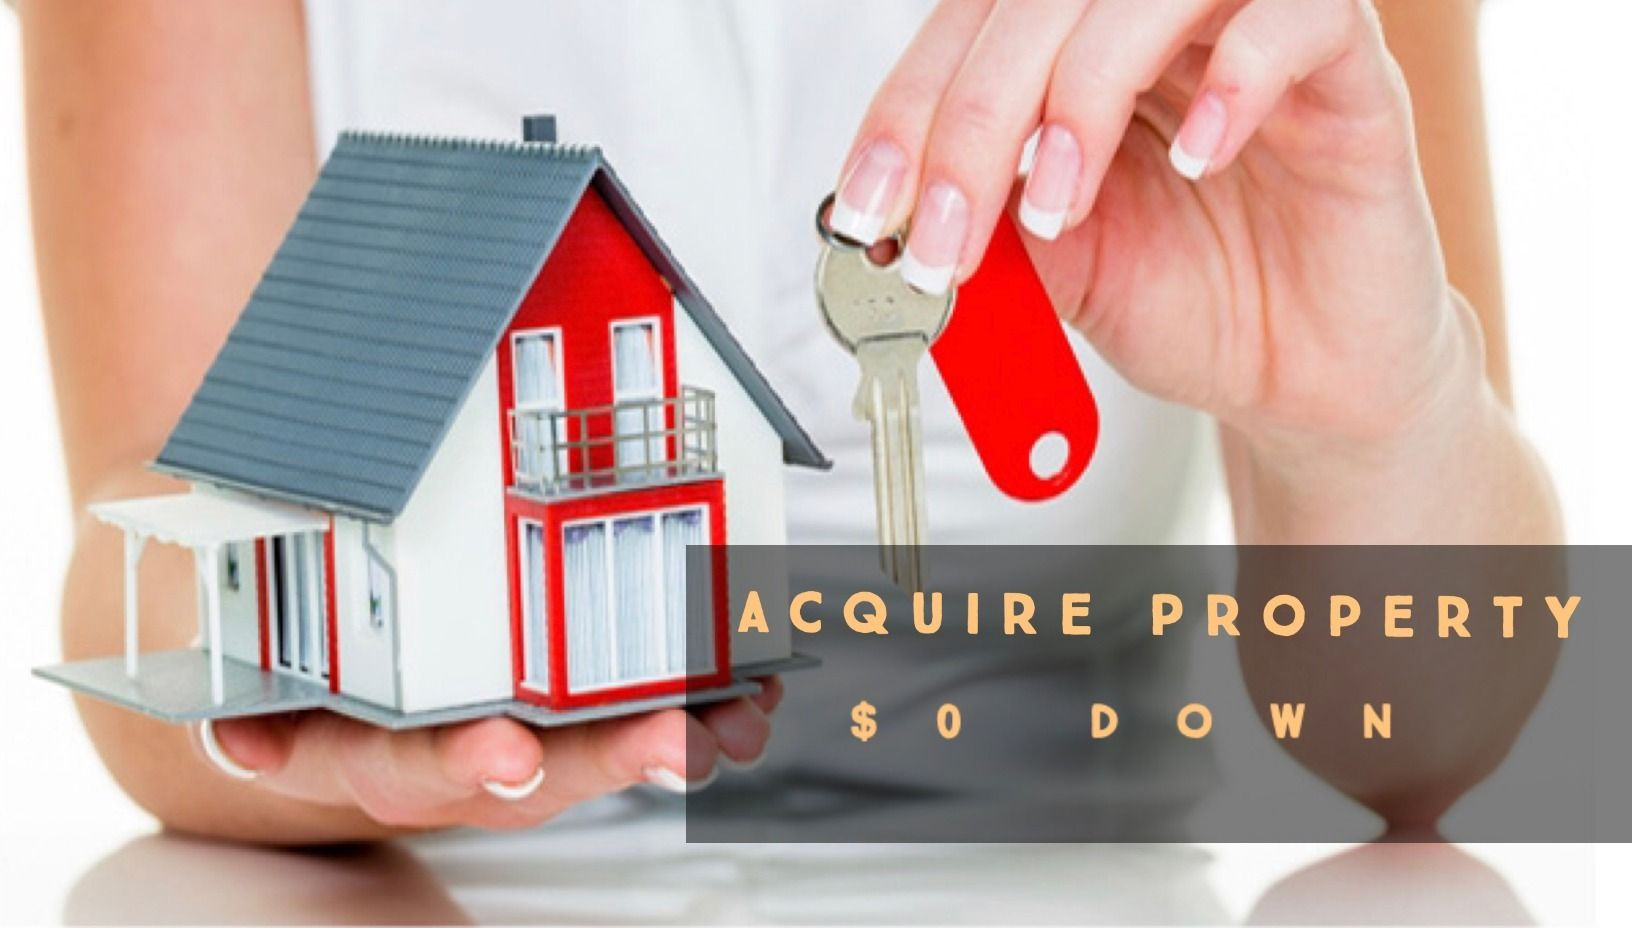 Acquire Property $0 Down